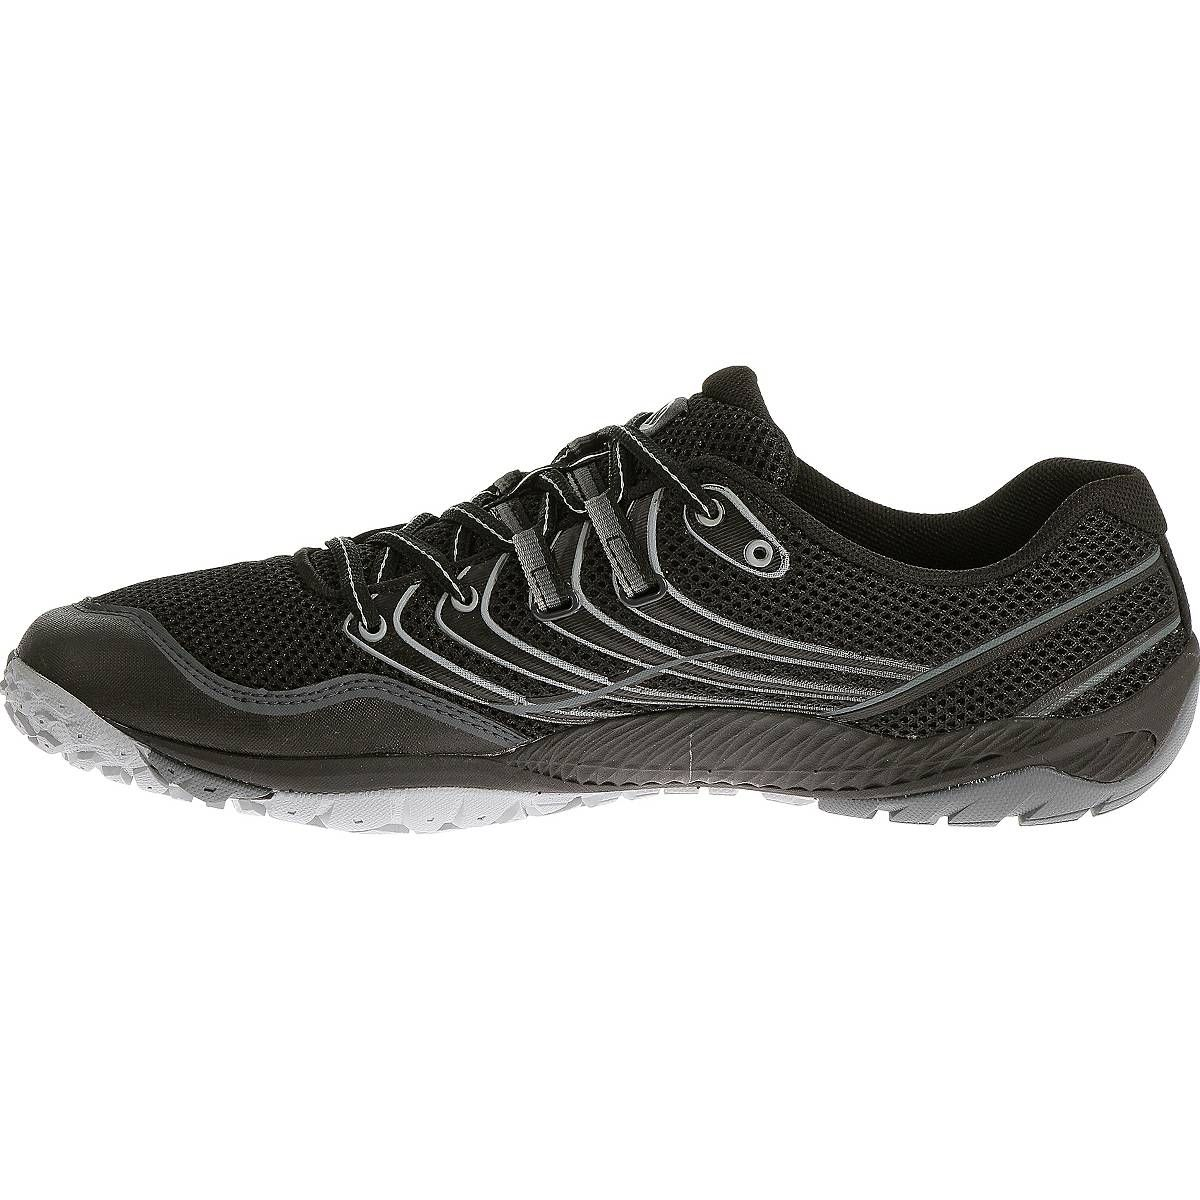 Merrell Lightweight Running Shoes